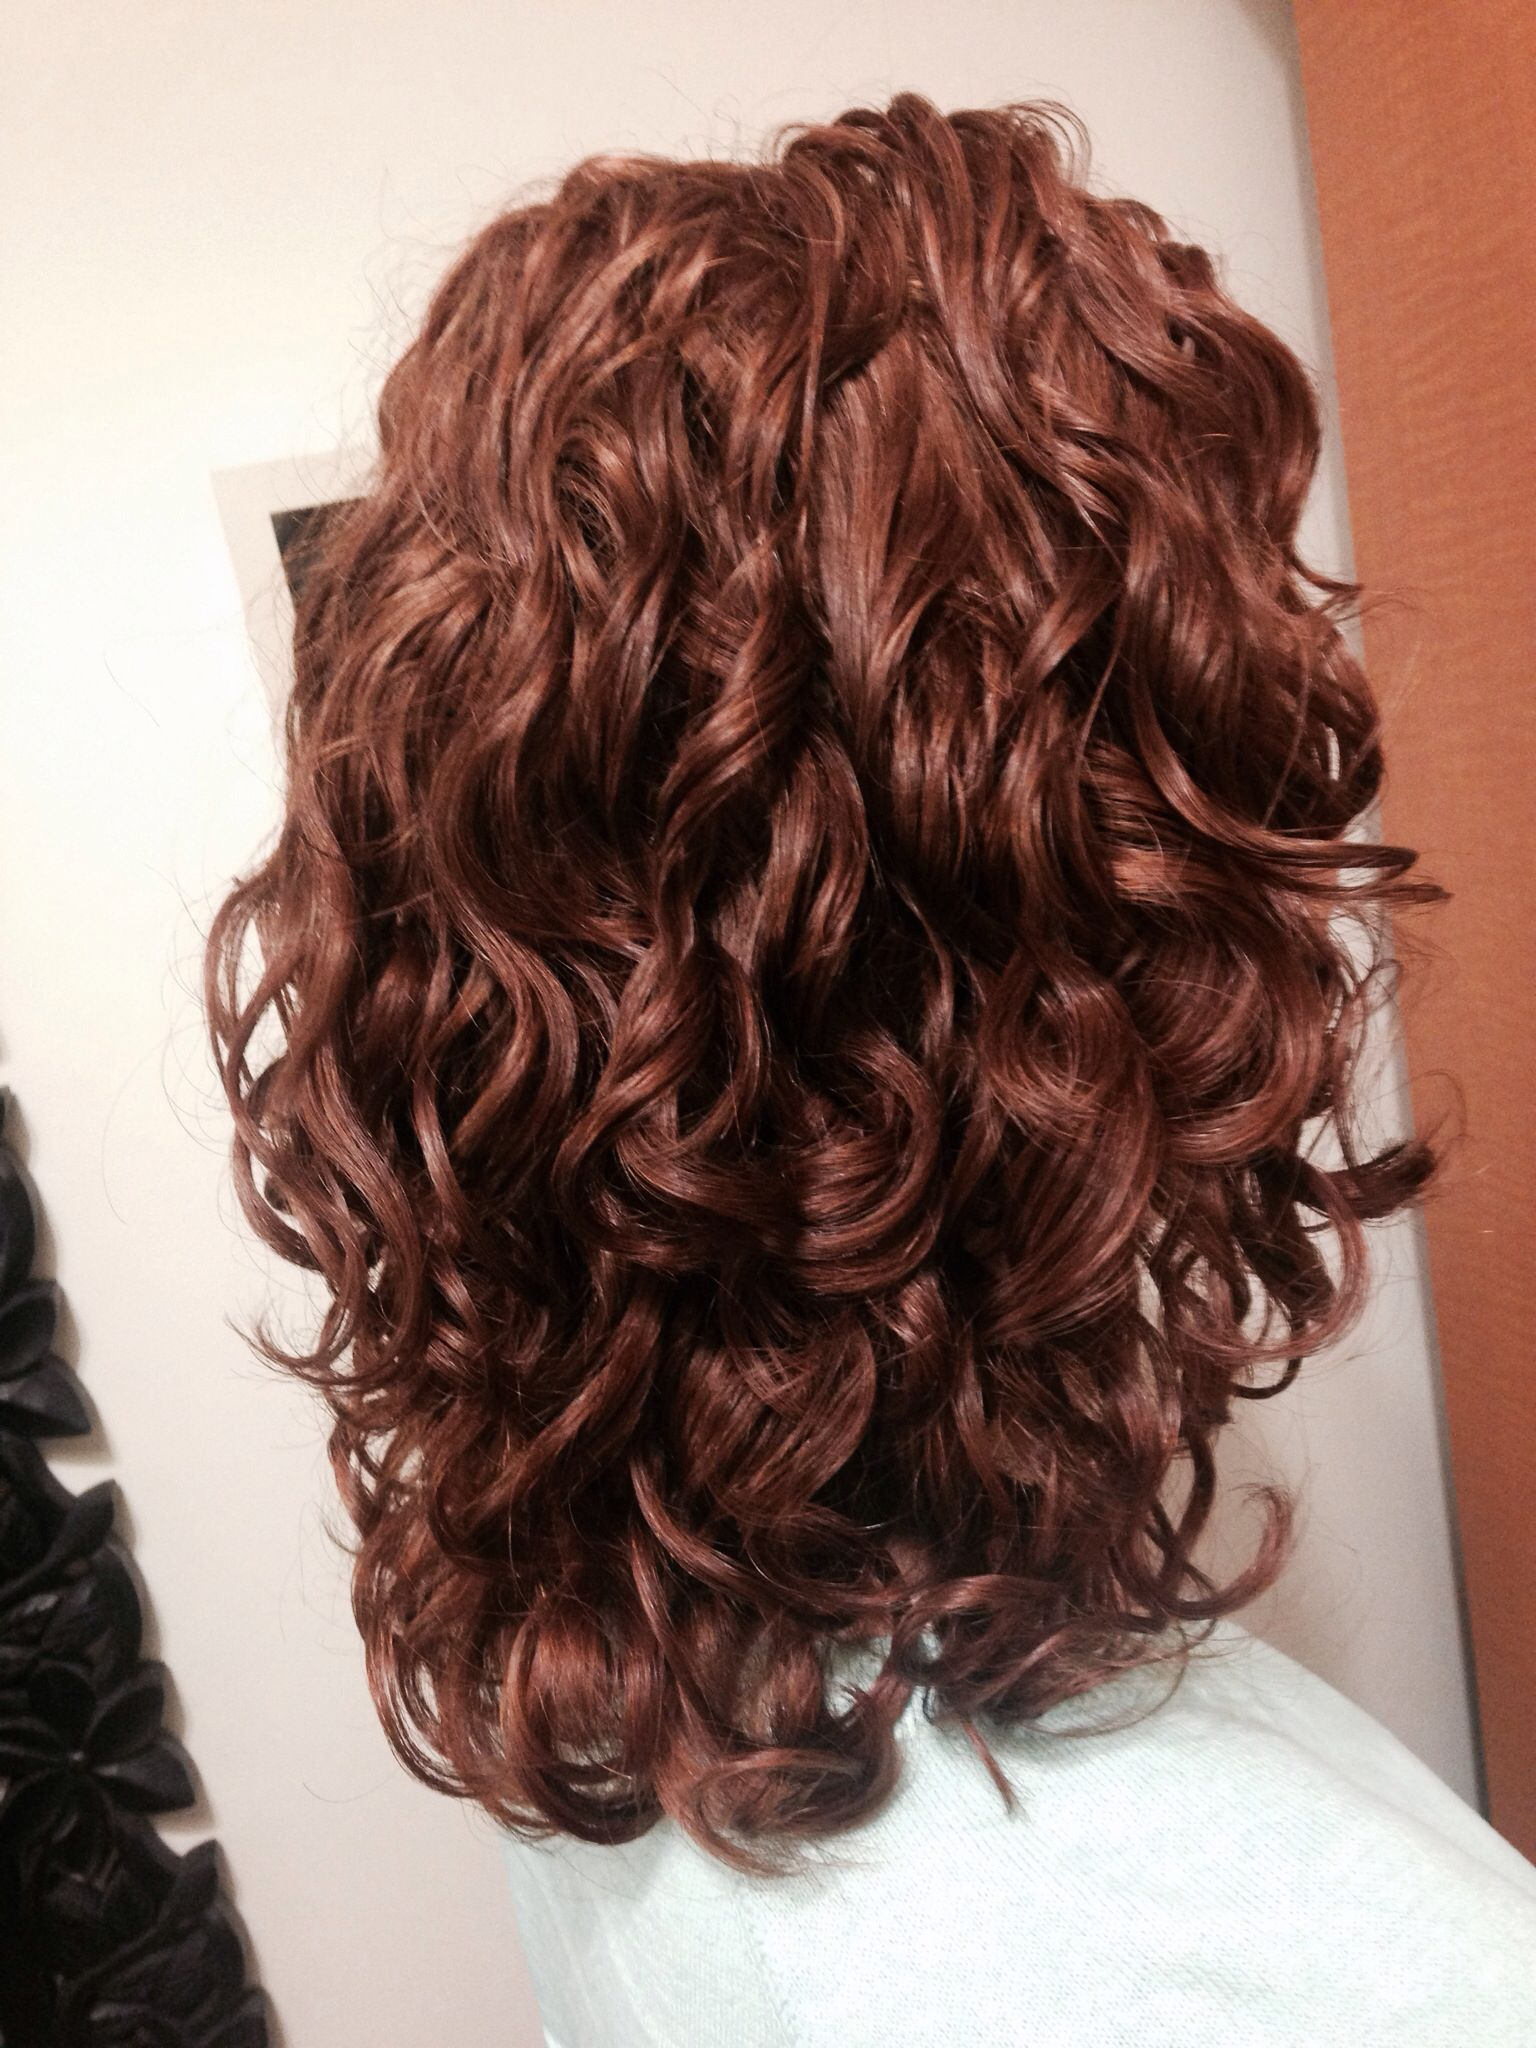 Pin By Ruth Anania On Hair Styles Curly Hair Styles Naturally Curly Hair Styles Dyed Curly Hair